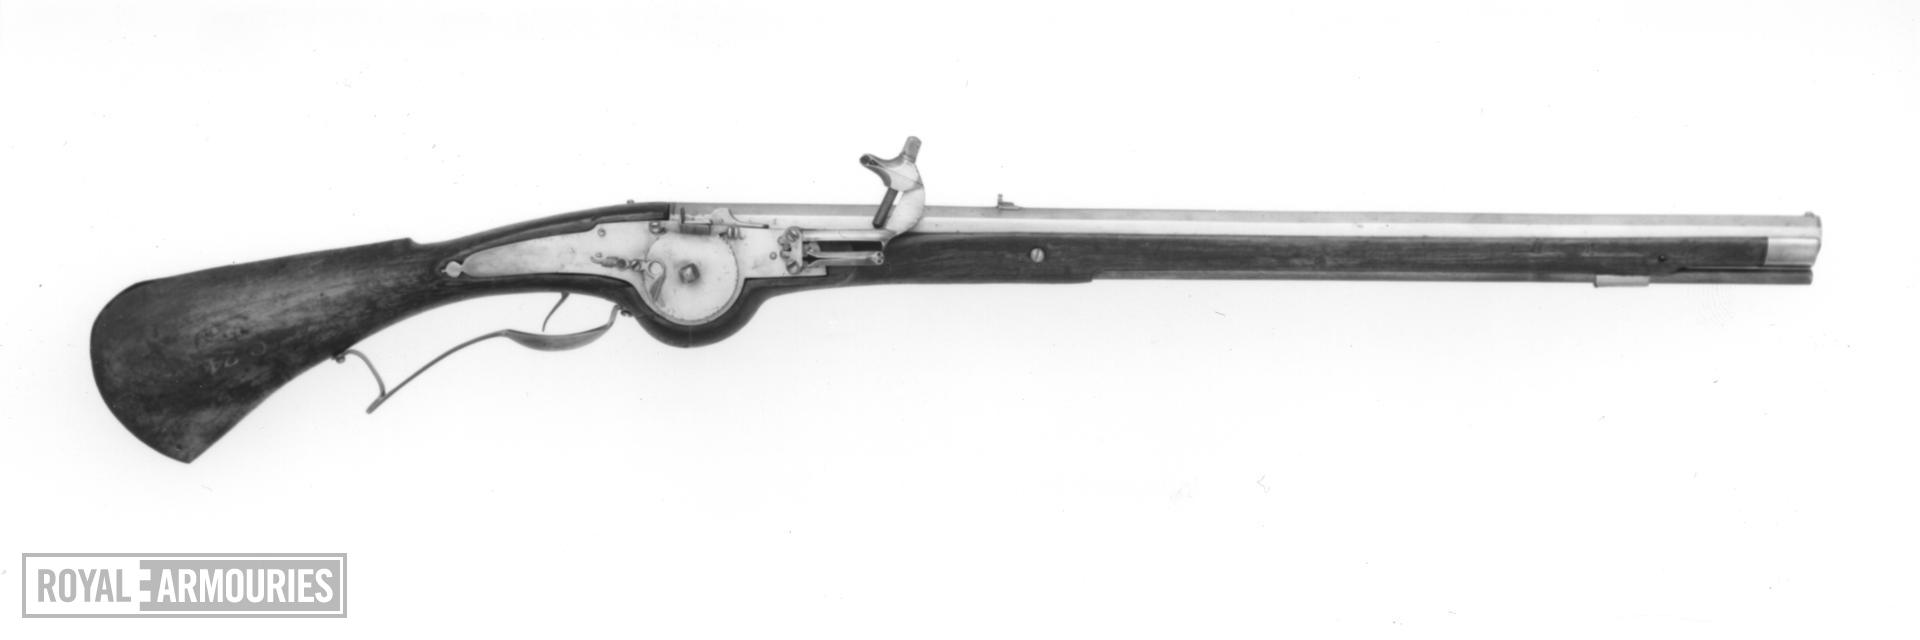 Wheellock muzzle-loading carbine For cavalry. The bearing-plate for the wheel is cut and pierced in a decorative manner